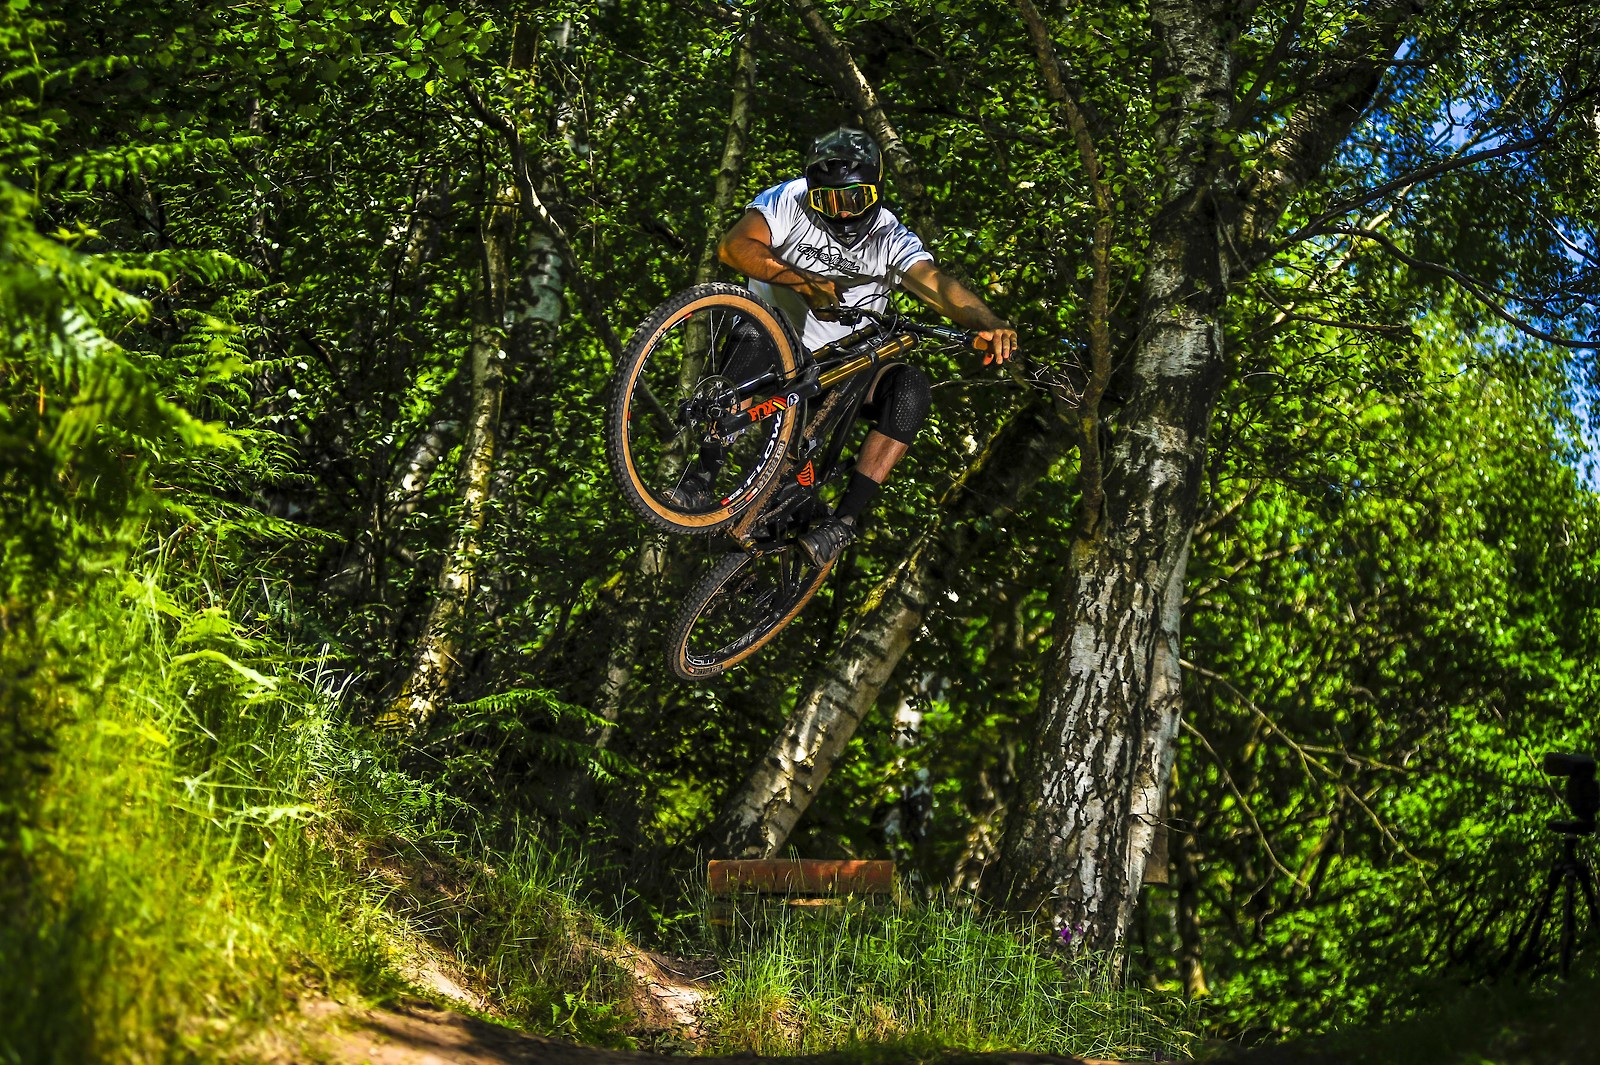 DSC1724 - robbarkerimages2017 - Mountain Biking Pictures - Vital MTB